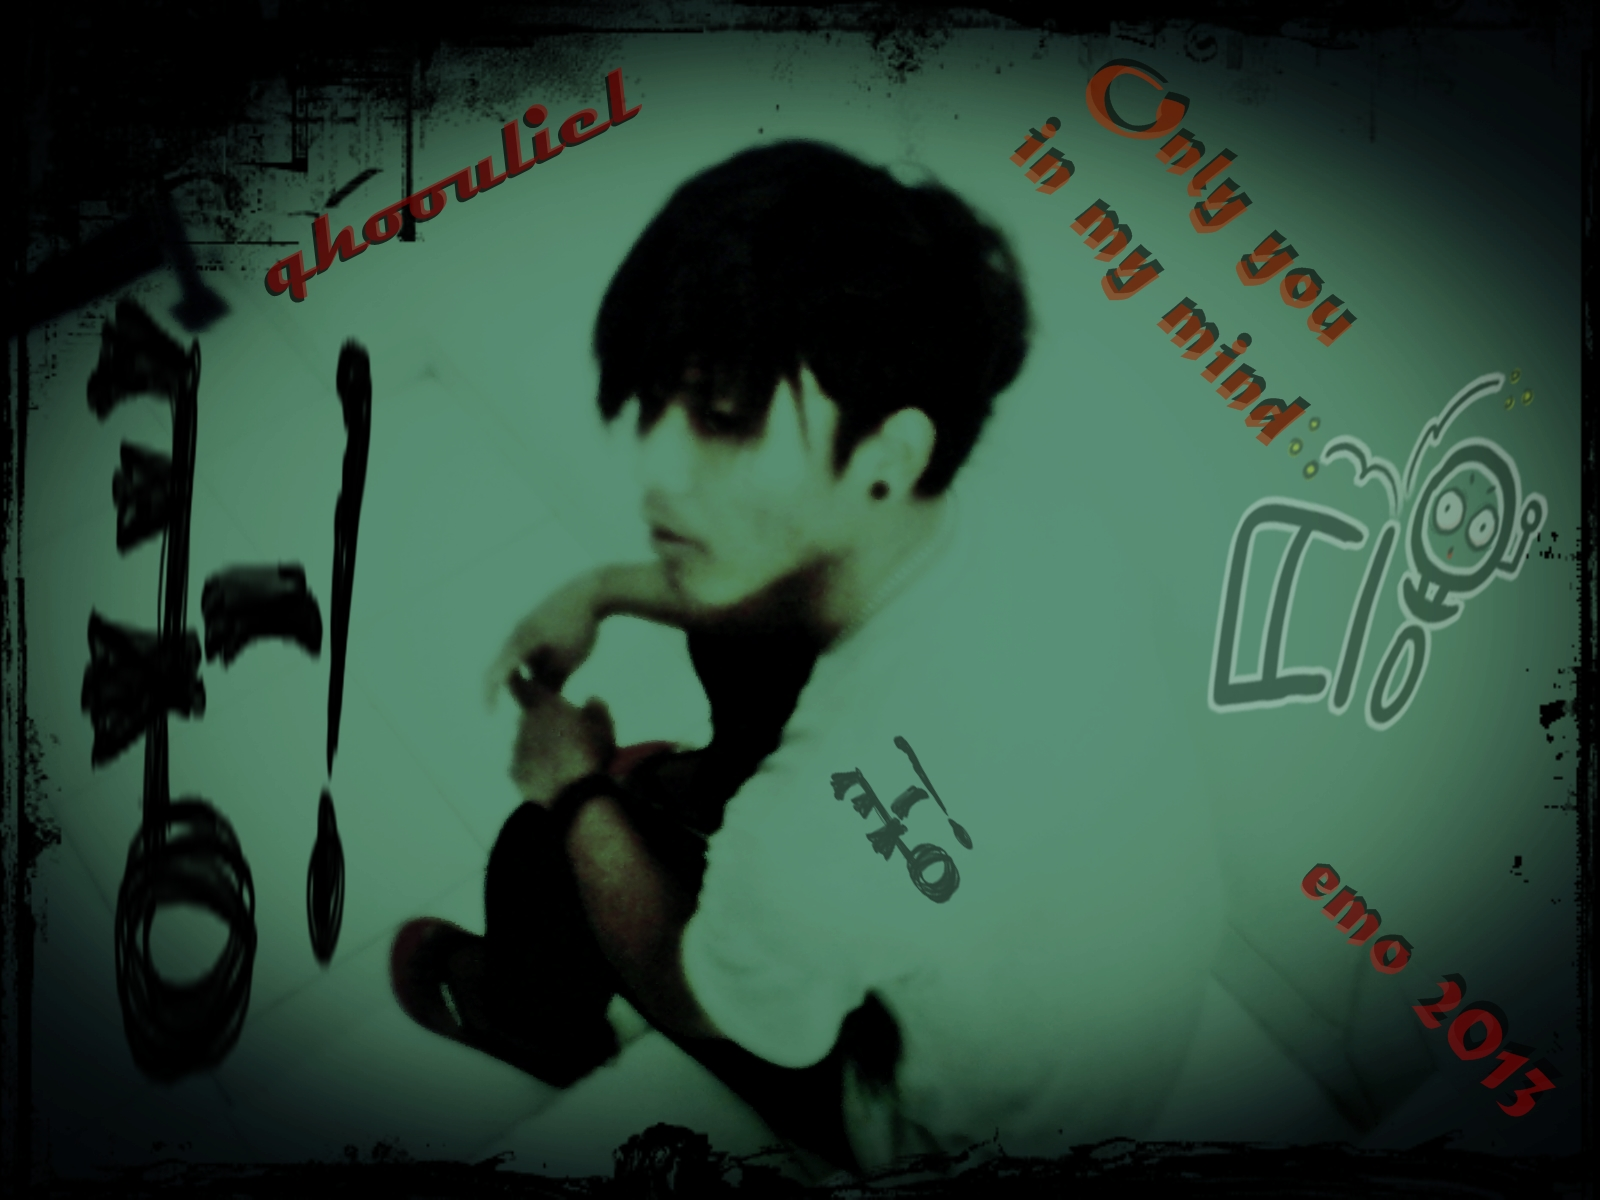 Wallpaper Emo Love couple : qhoouliel_abcd - Emo Love Wallpaper (33711017) - Fanpop